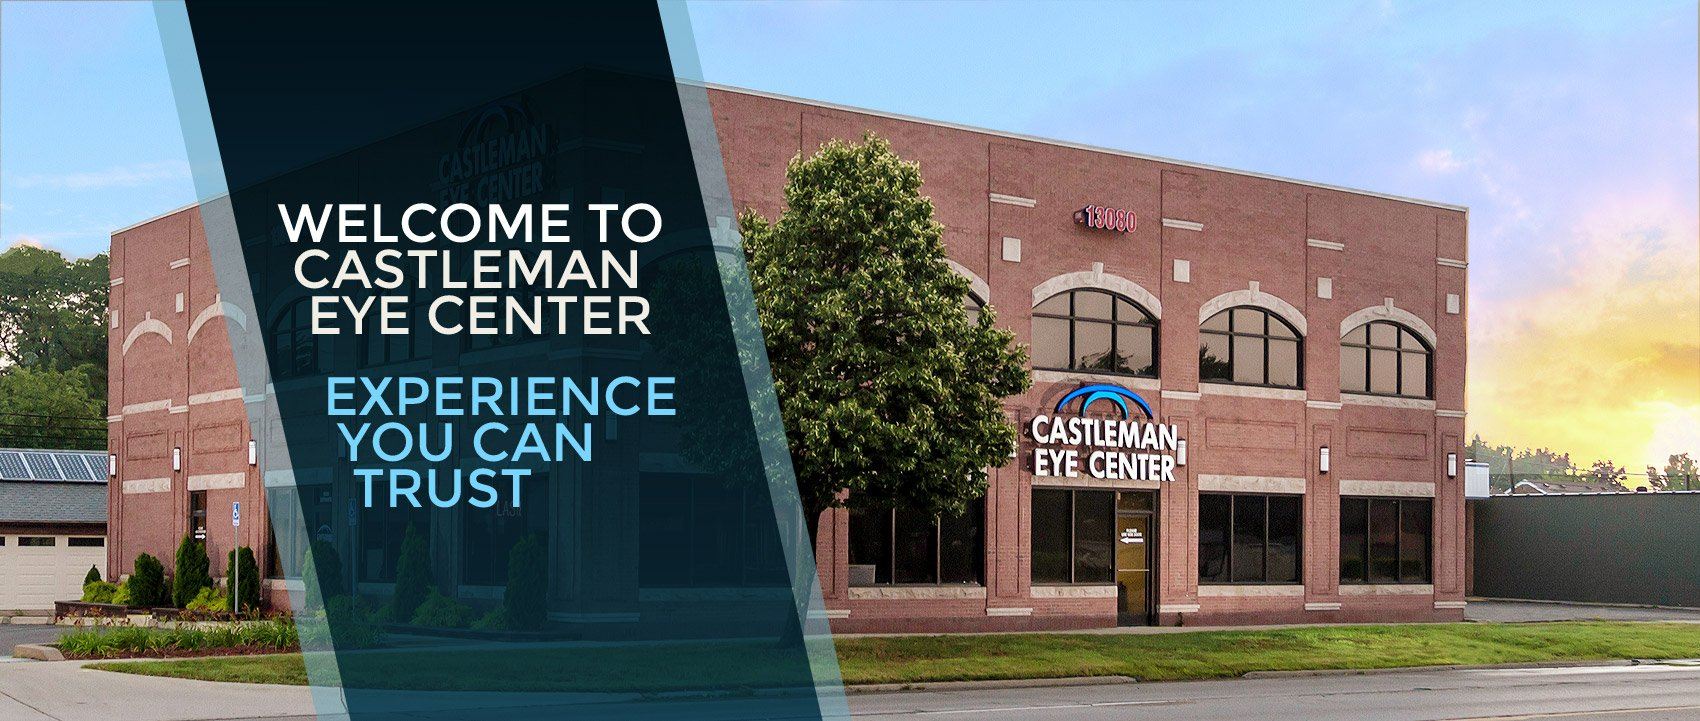 Welcome to Castleman Eye Center - Experience you can Trust